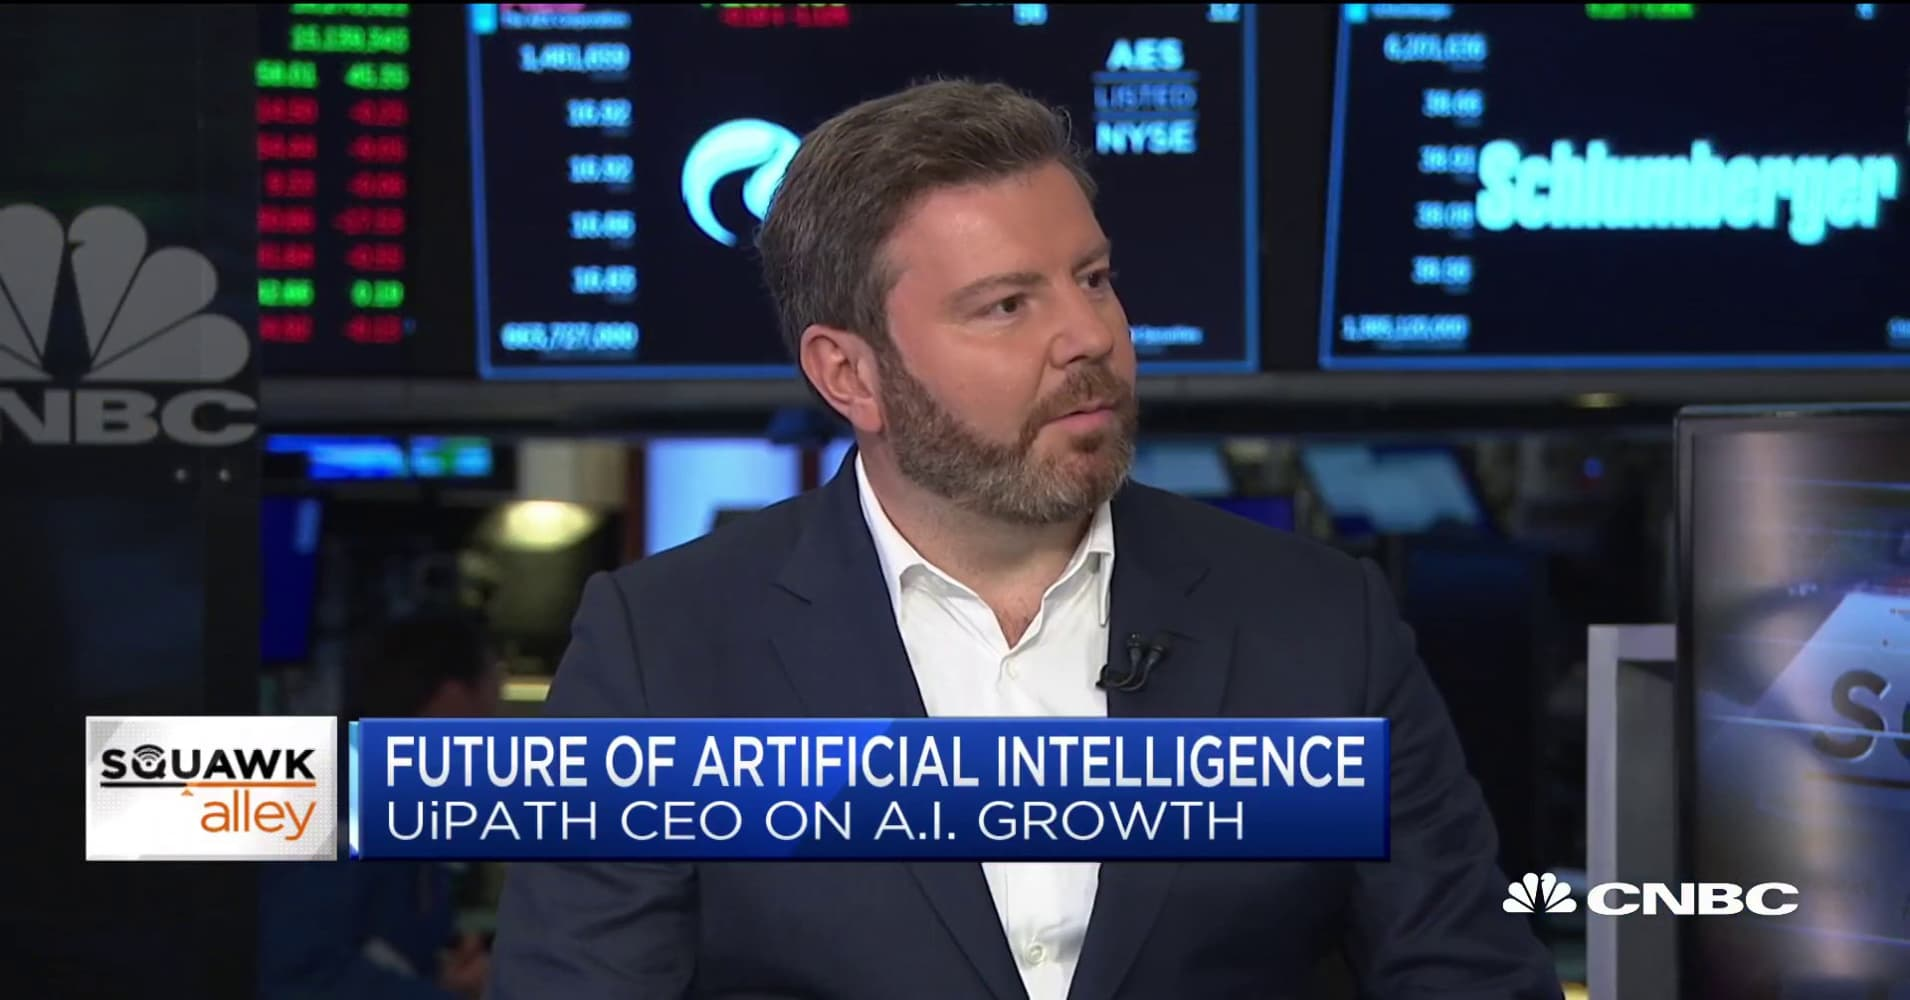 UiPath CEO believes artificial intelligence will add jobs and make work  more creative